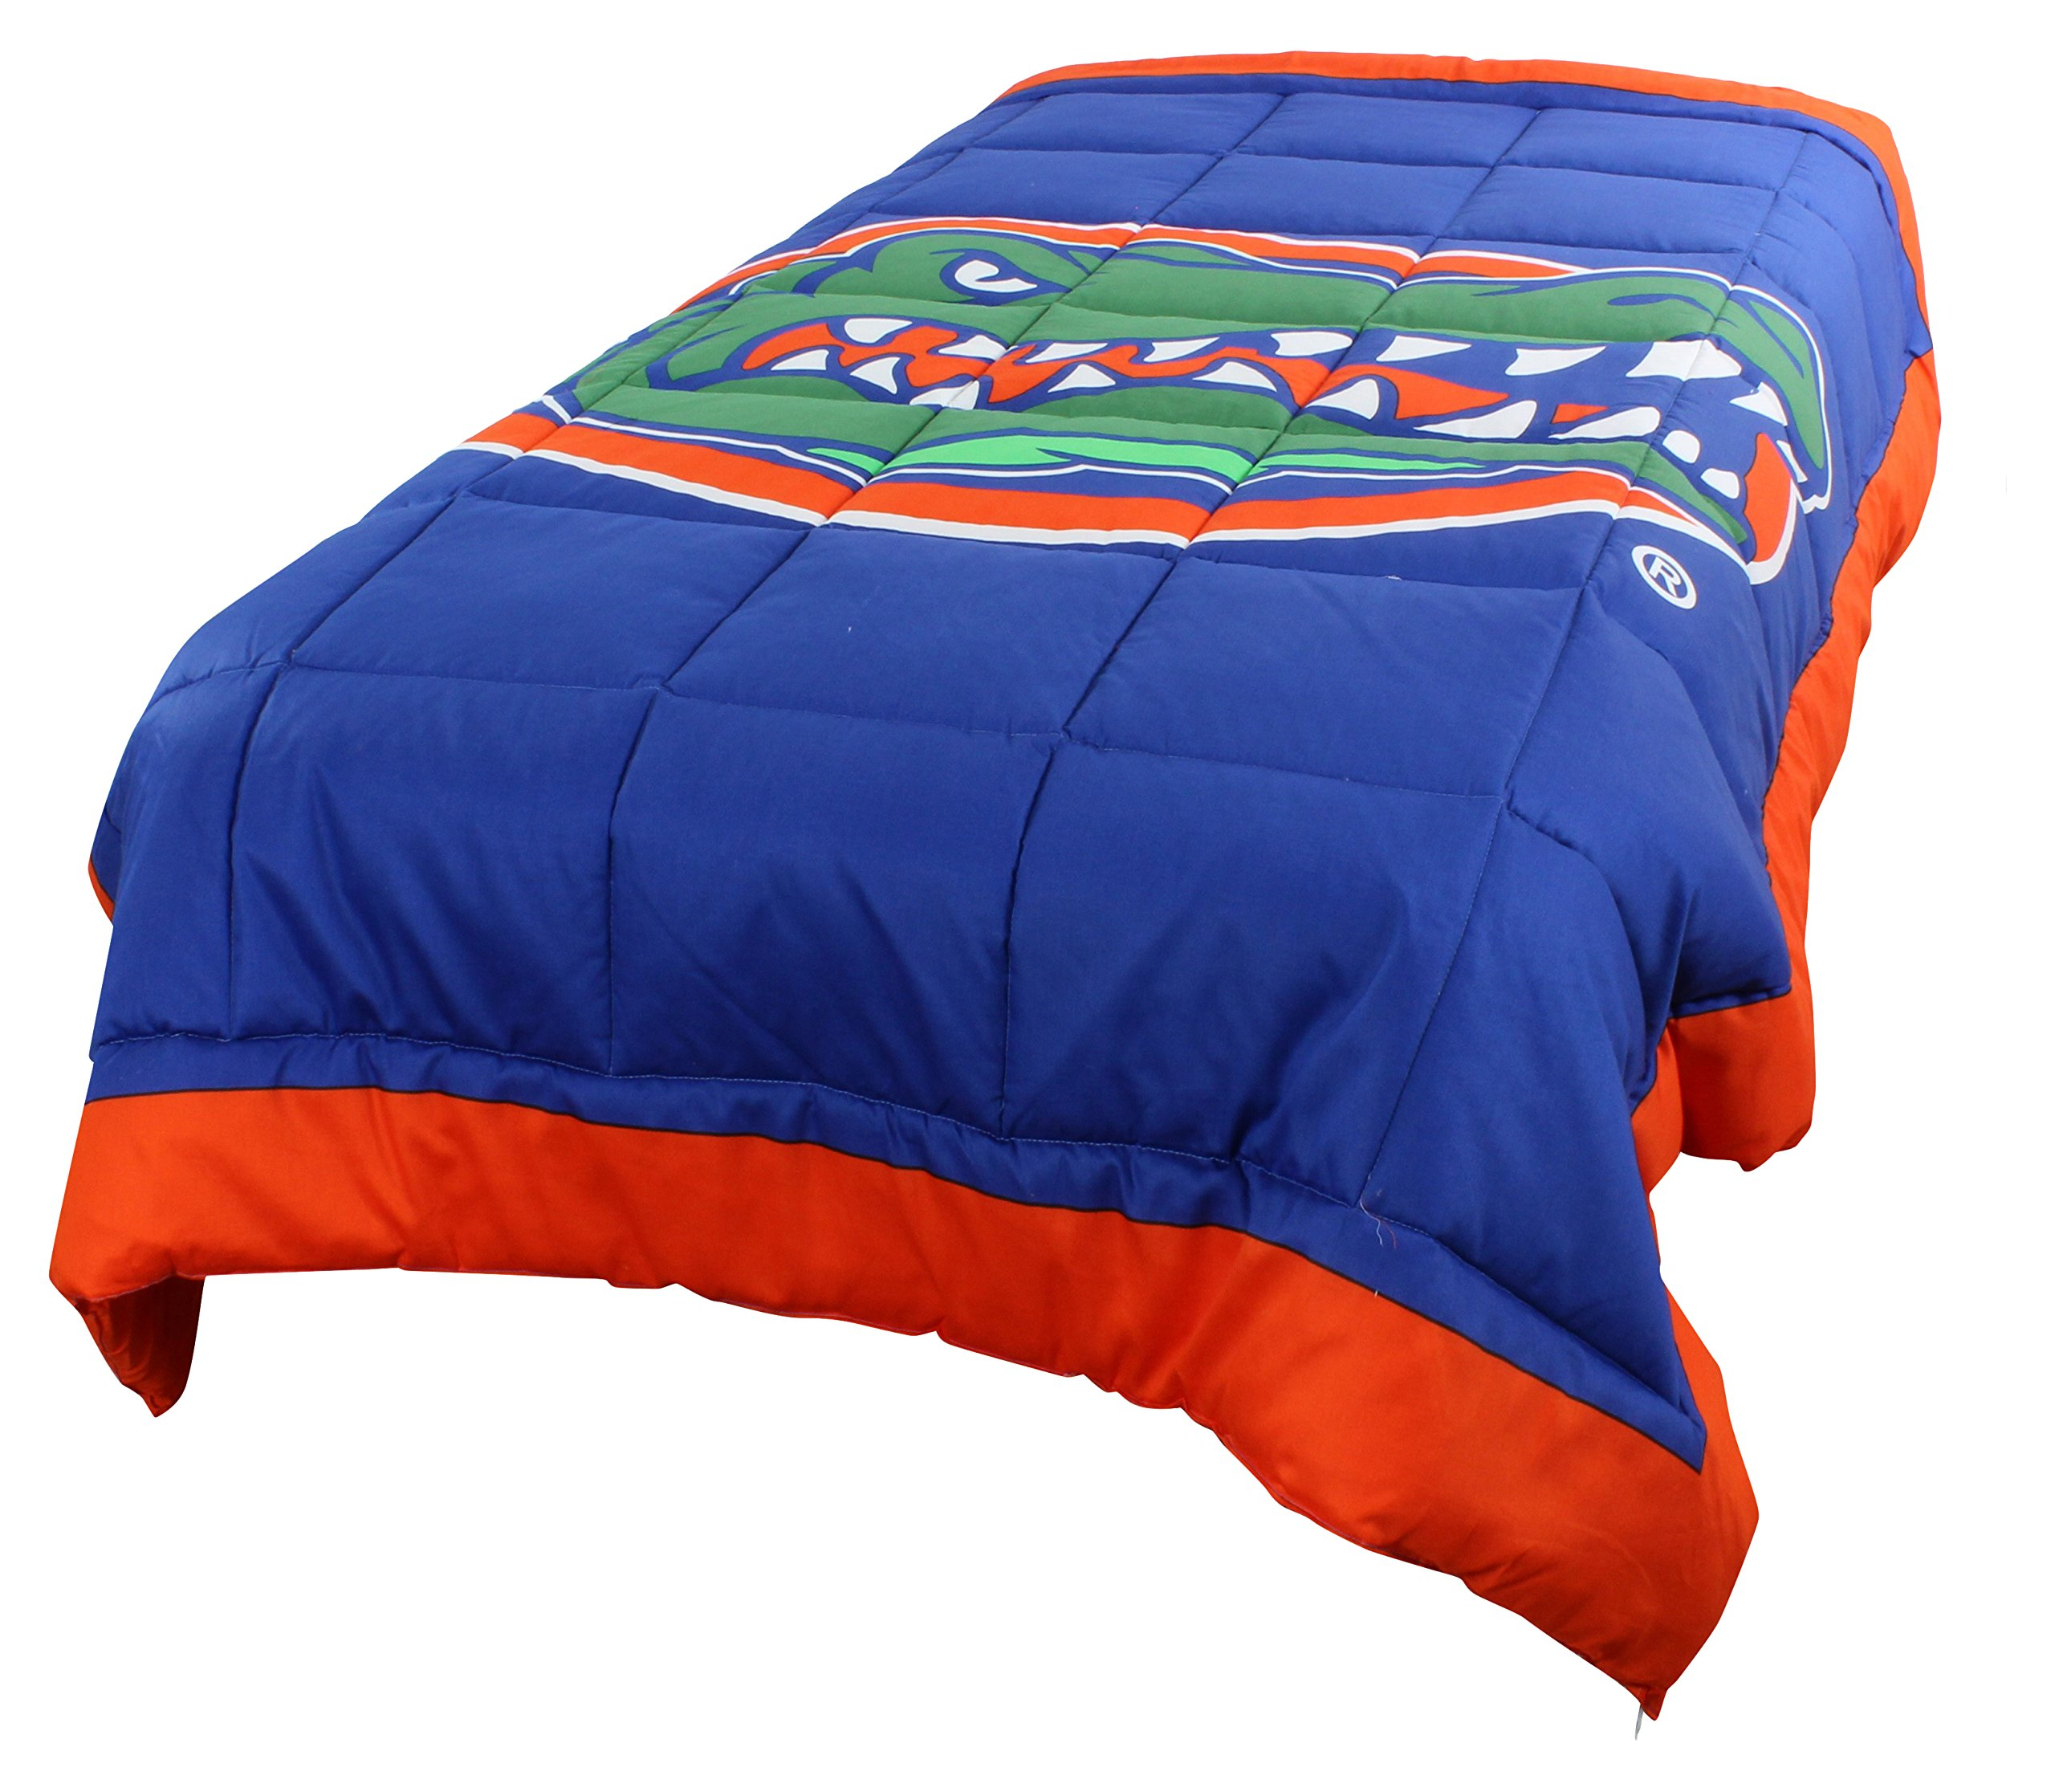 College Covers Florida Gators 2 Sided Reversible Comforter, Twin